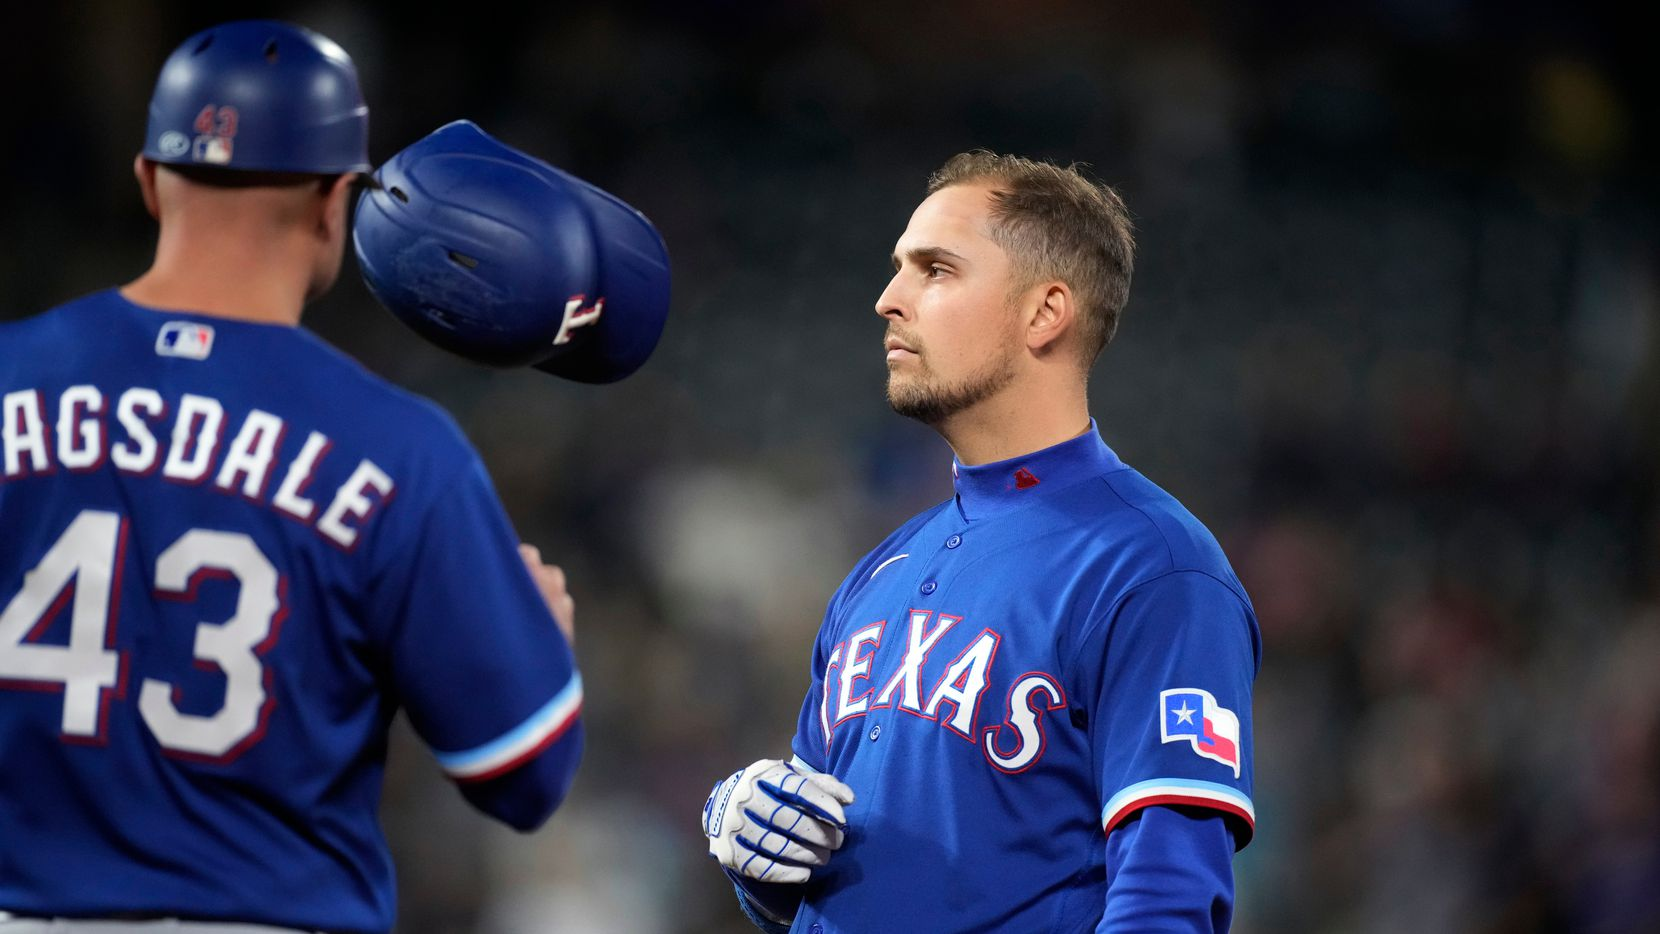 Texas Rangers' Nate Lowe, right, tosses his batting helmet to first base coach Corey Ragsdale after Lowe flied out in the eighth inning of the team's baseball game against the Colorado Rockies on Tuesday, June 1, 2021, in Denver.